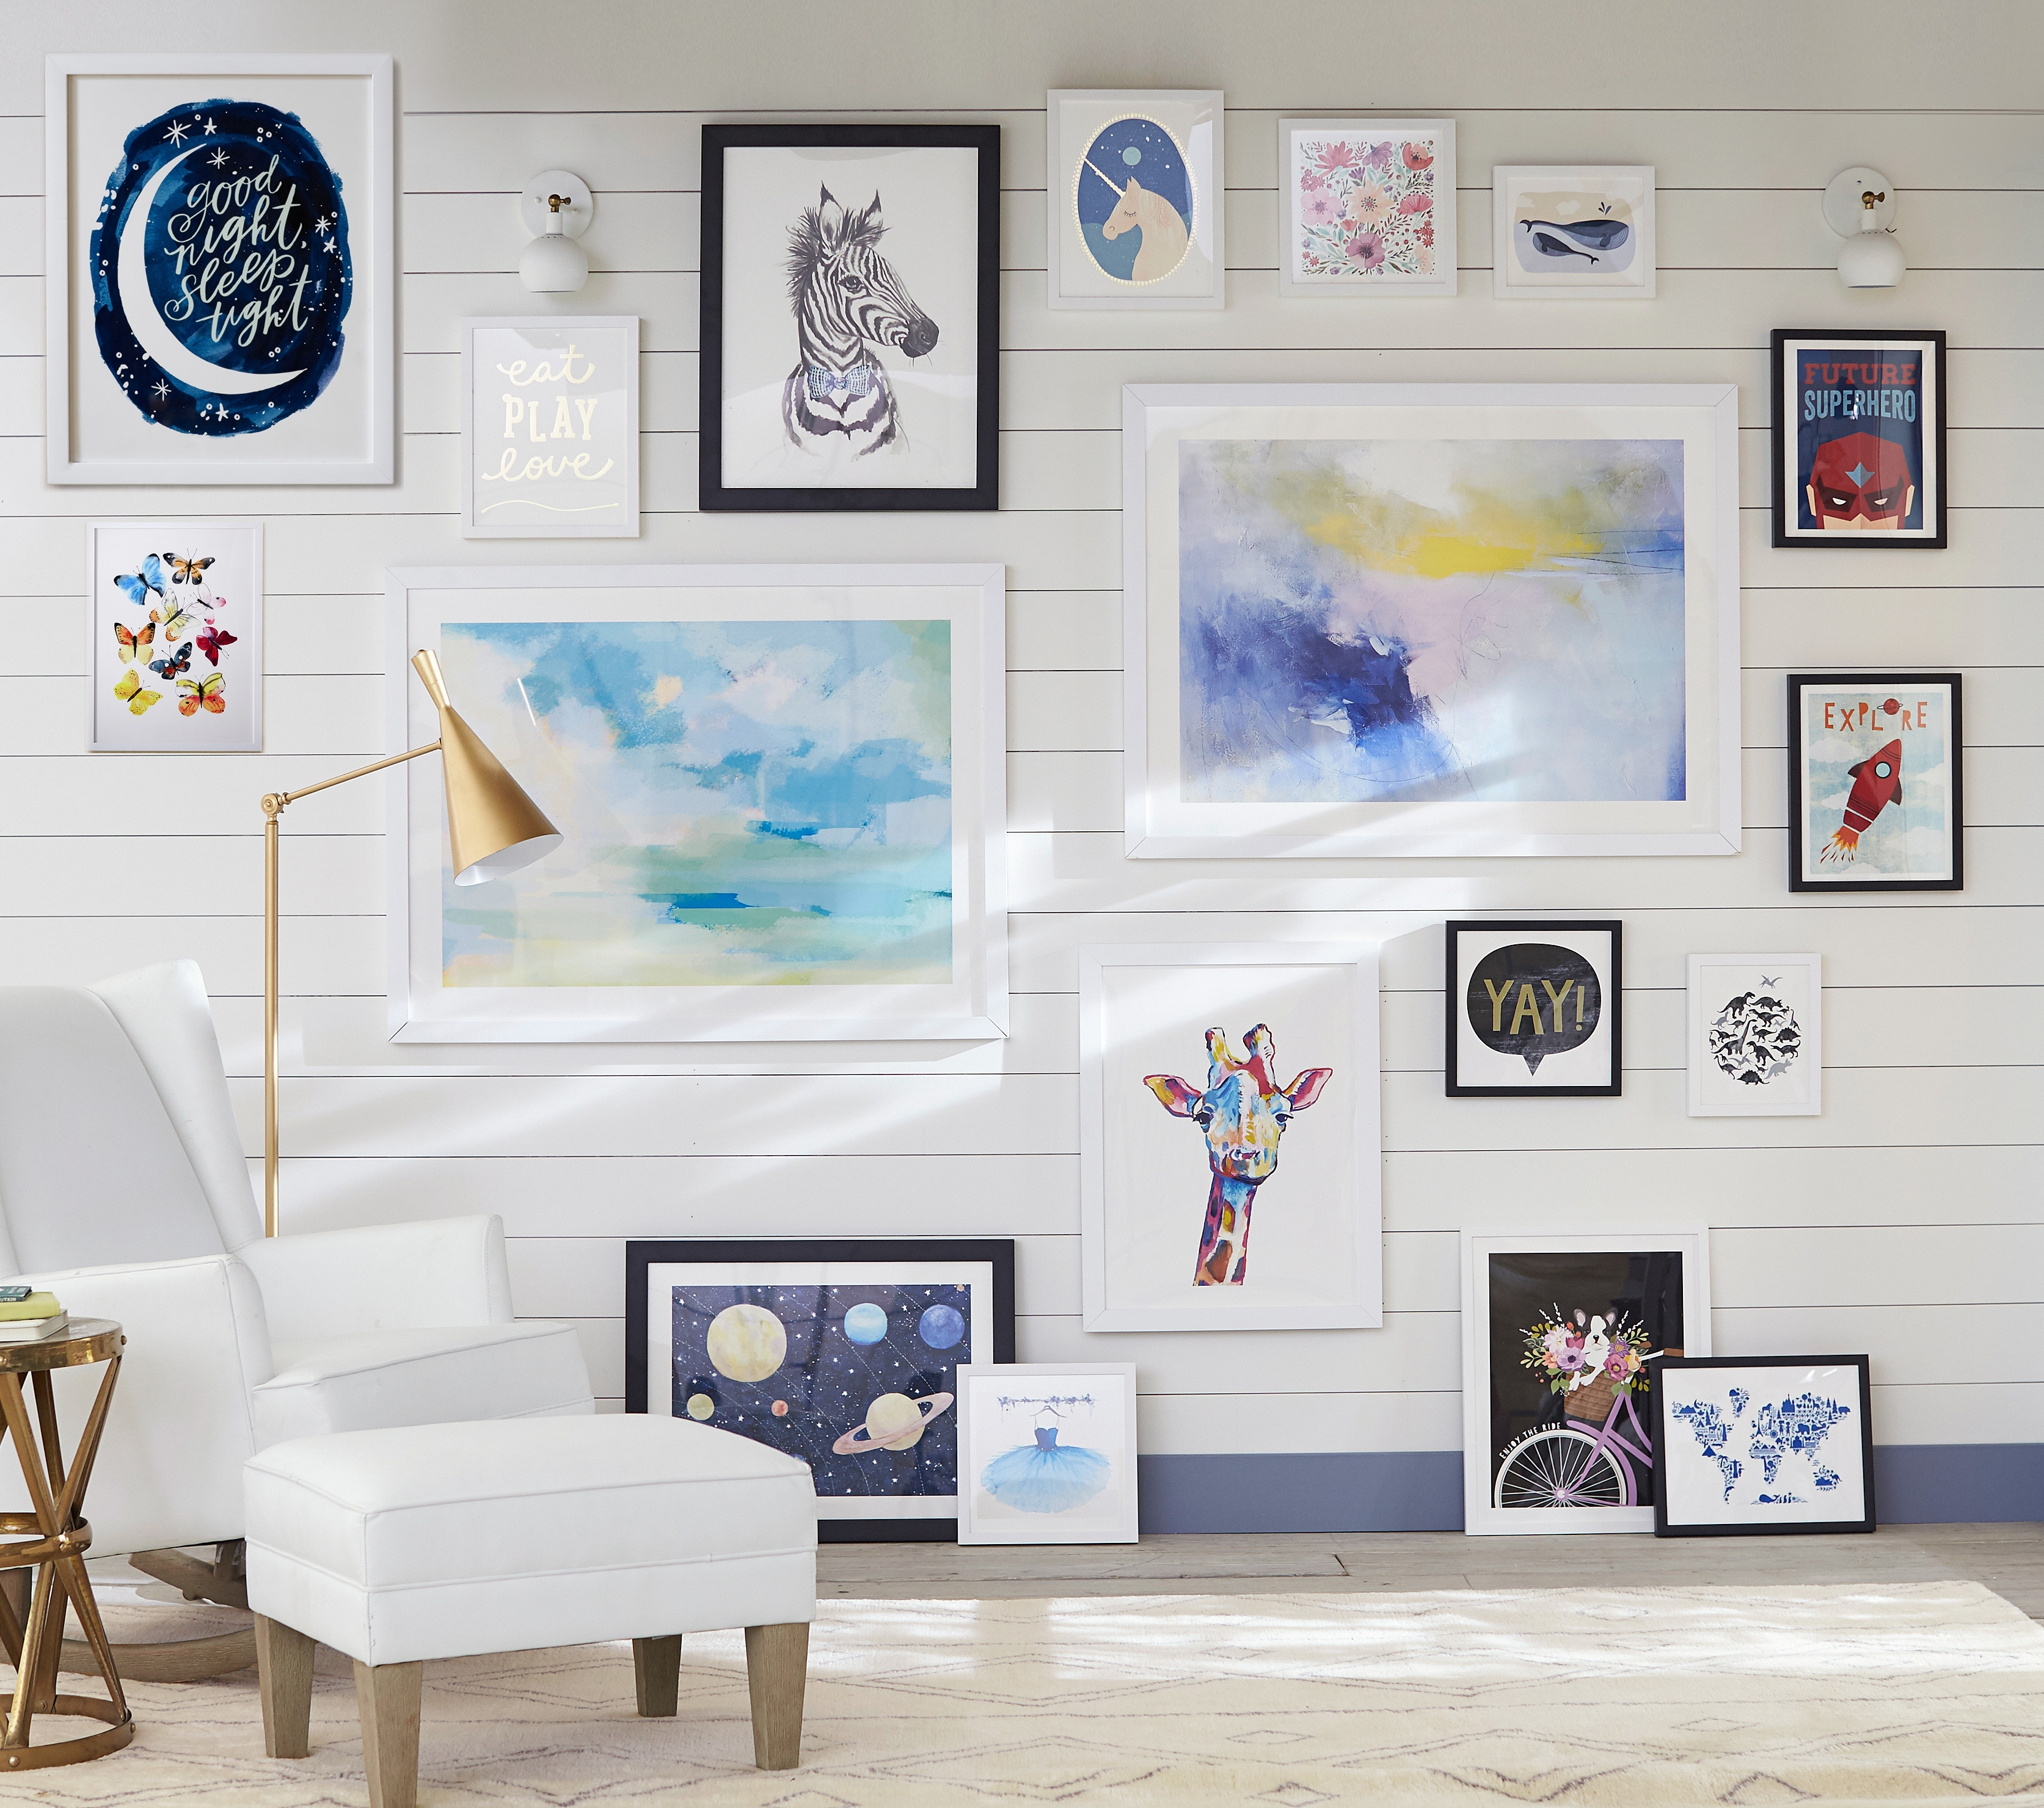 Pottery Barn Kids And Pbteen Debut Exclusive Wall Art Collection In 2017 Pottery Barn Wall Art (View 11 of 15)